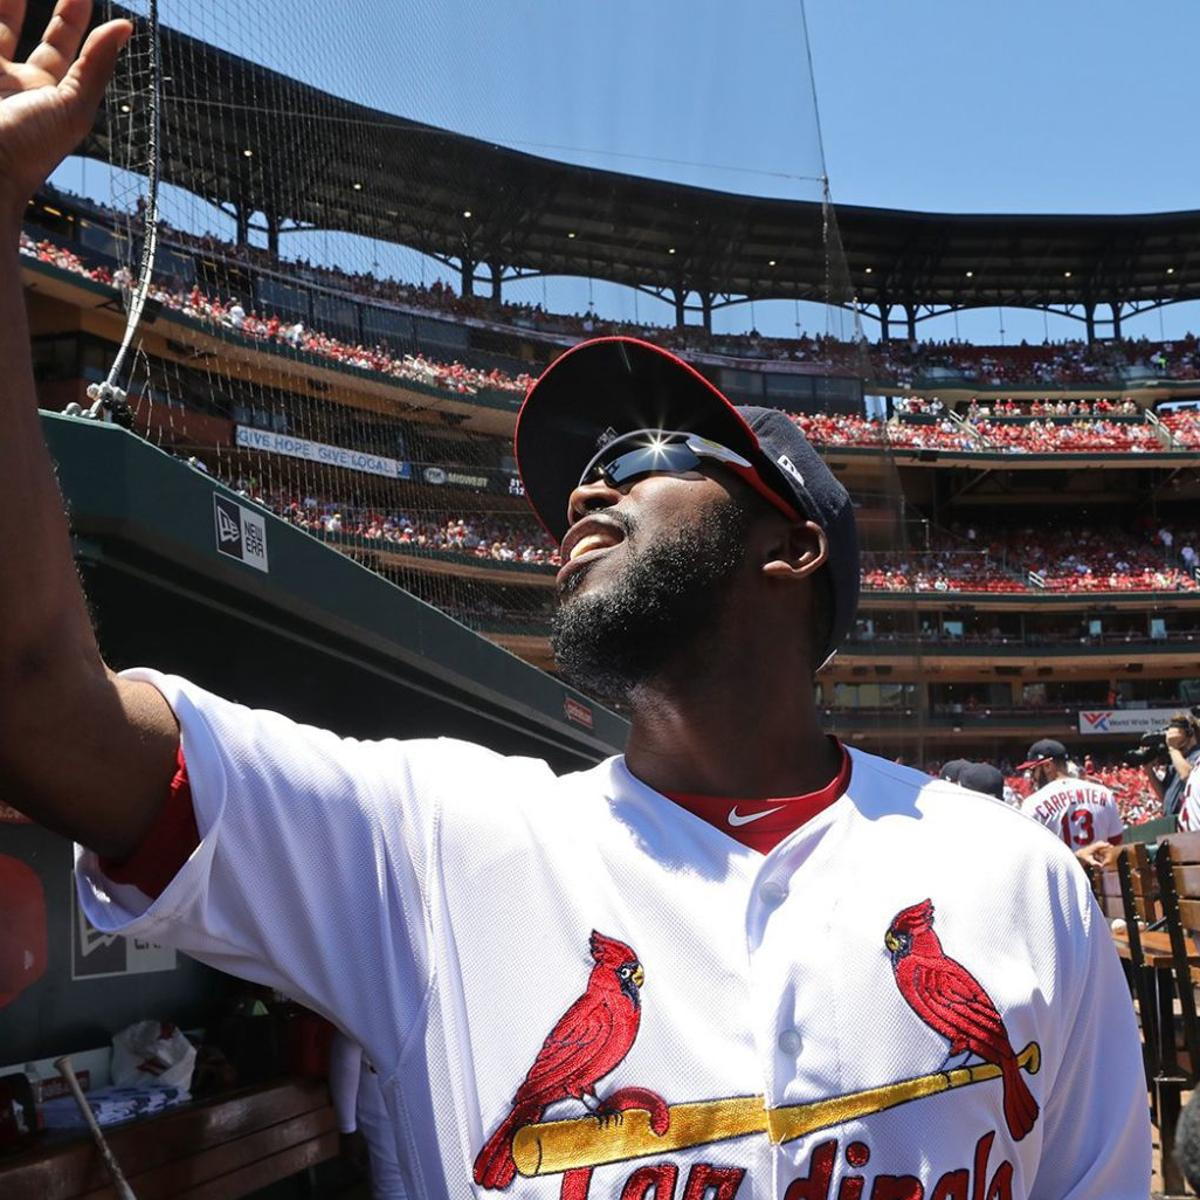 2c5c0617d036 Depressed' last season, Fowler energized by faith the Cardinals have ...